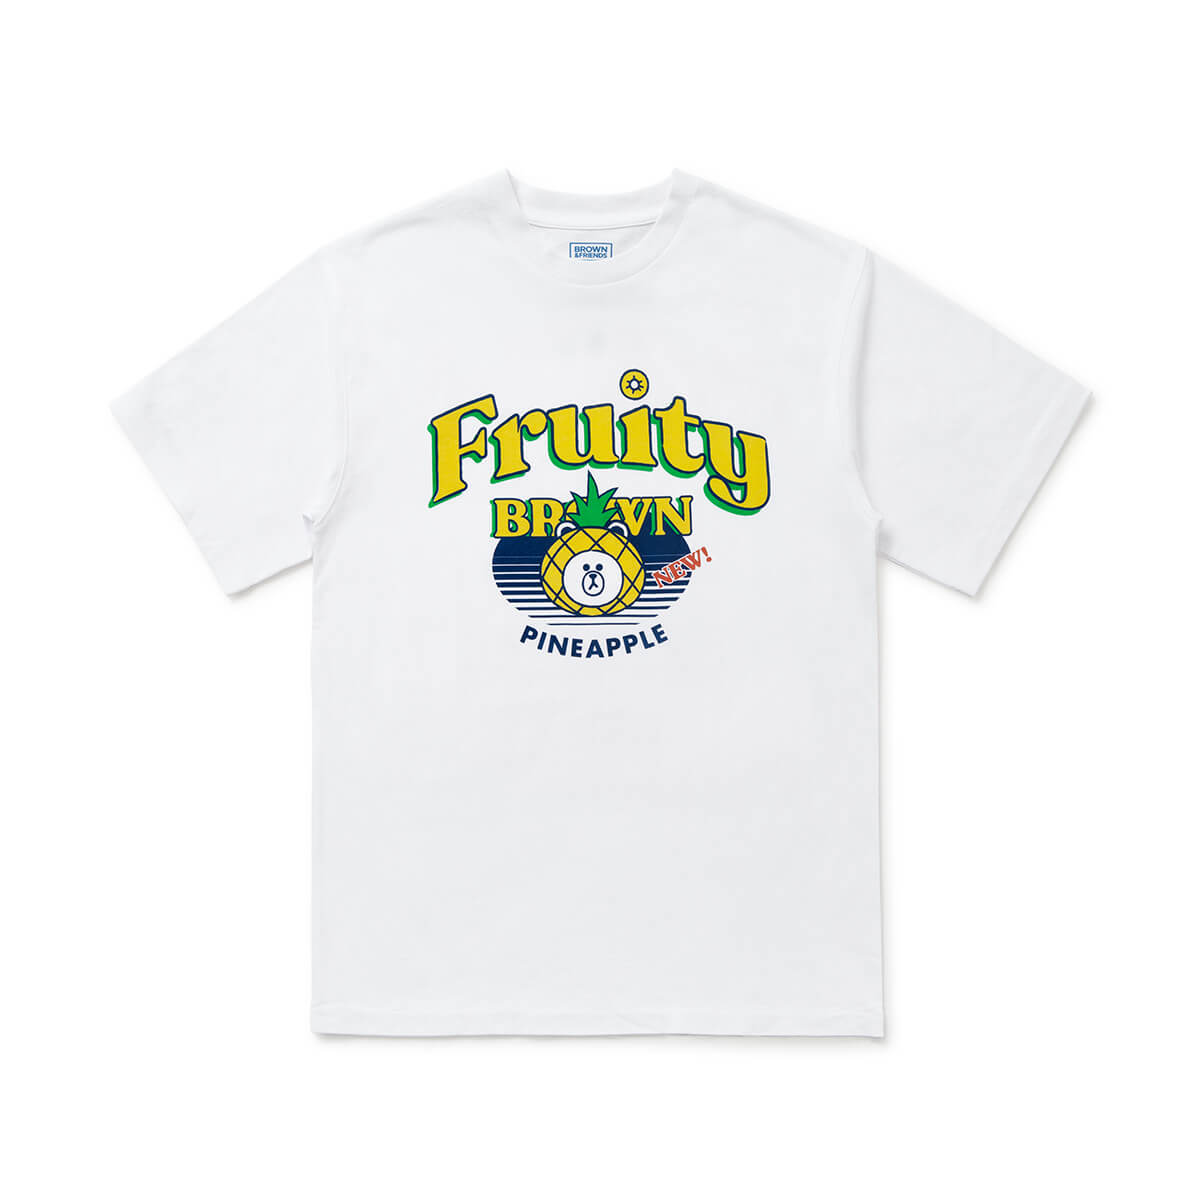 BROWN Fruity Pineapple T-Shirt White